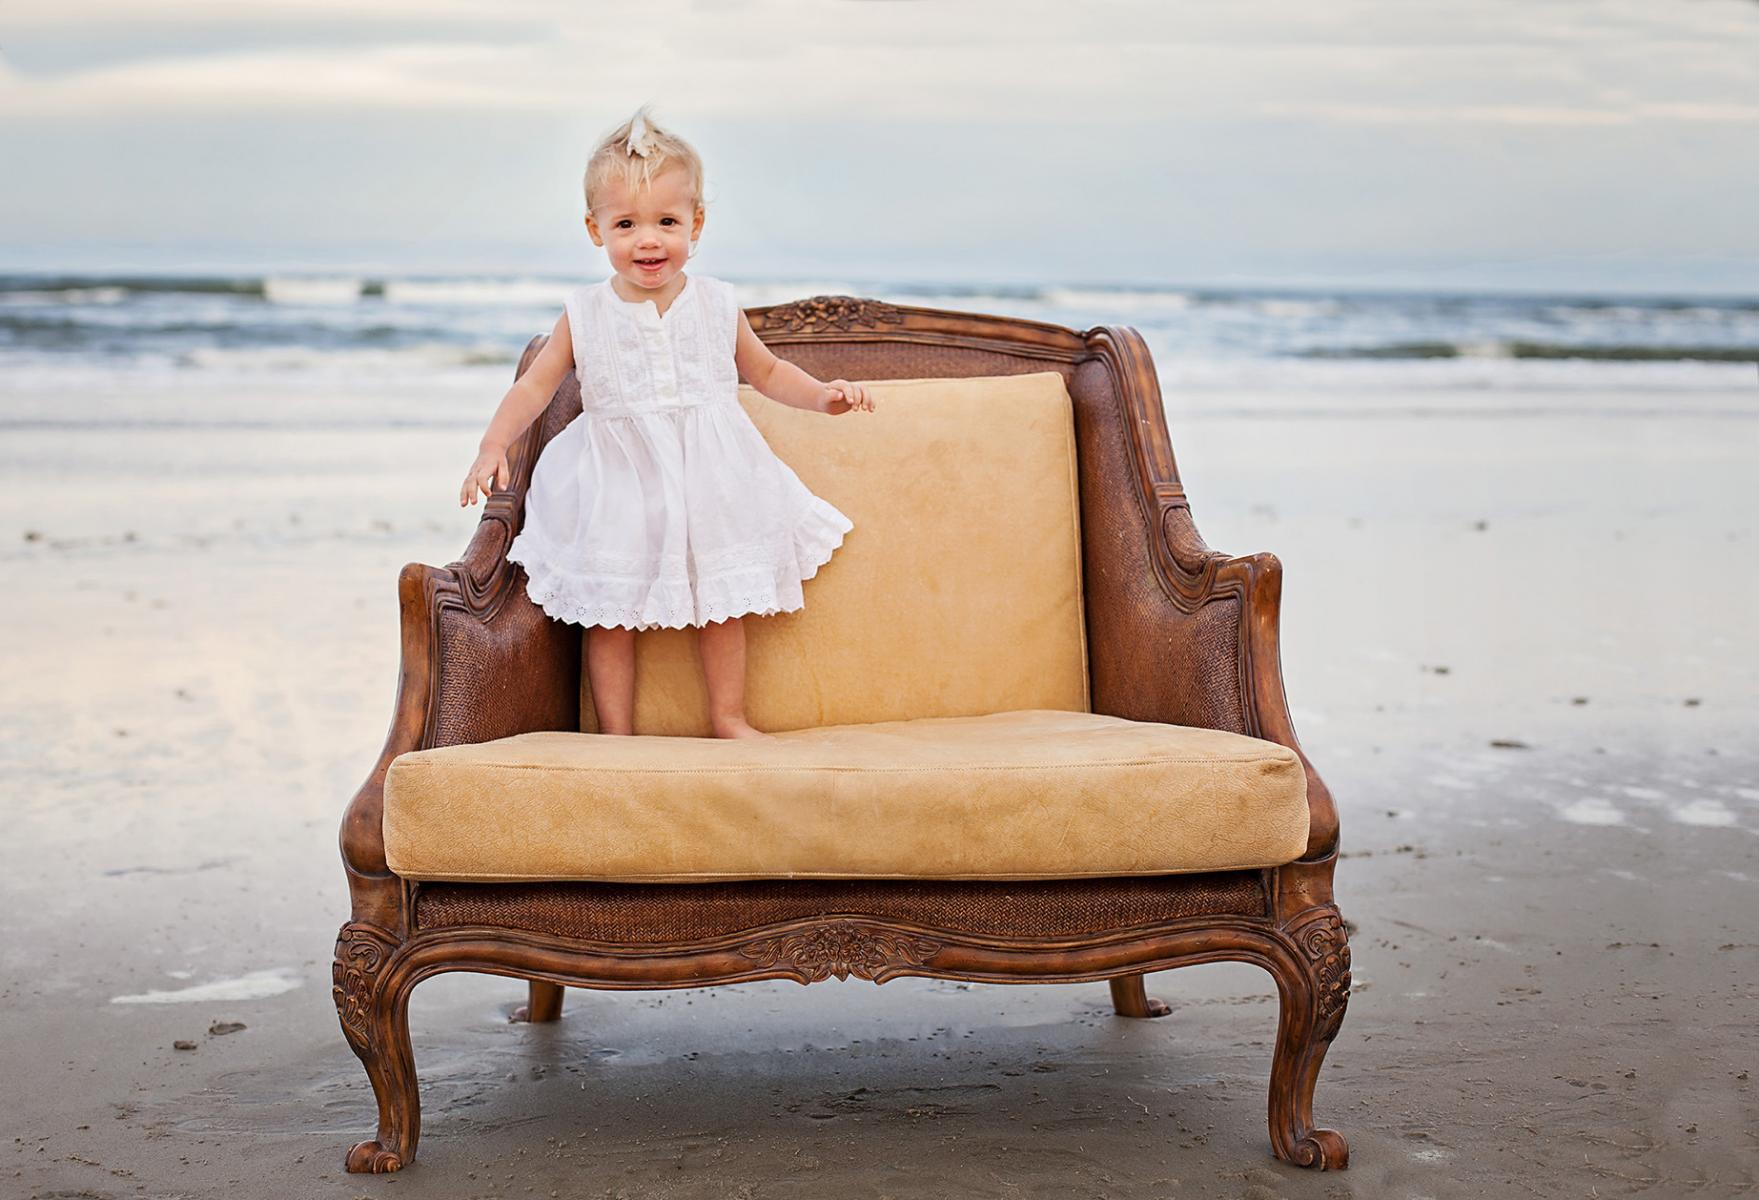 Sweet little girl photograph on chair at the beach Corolla NC